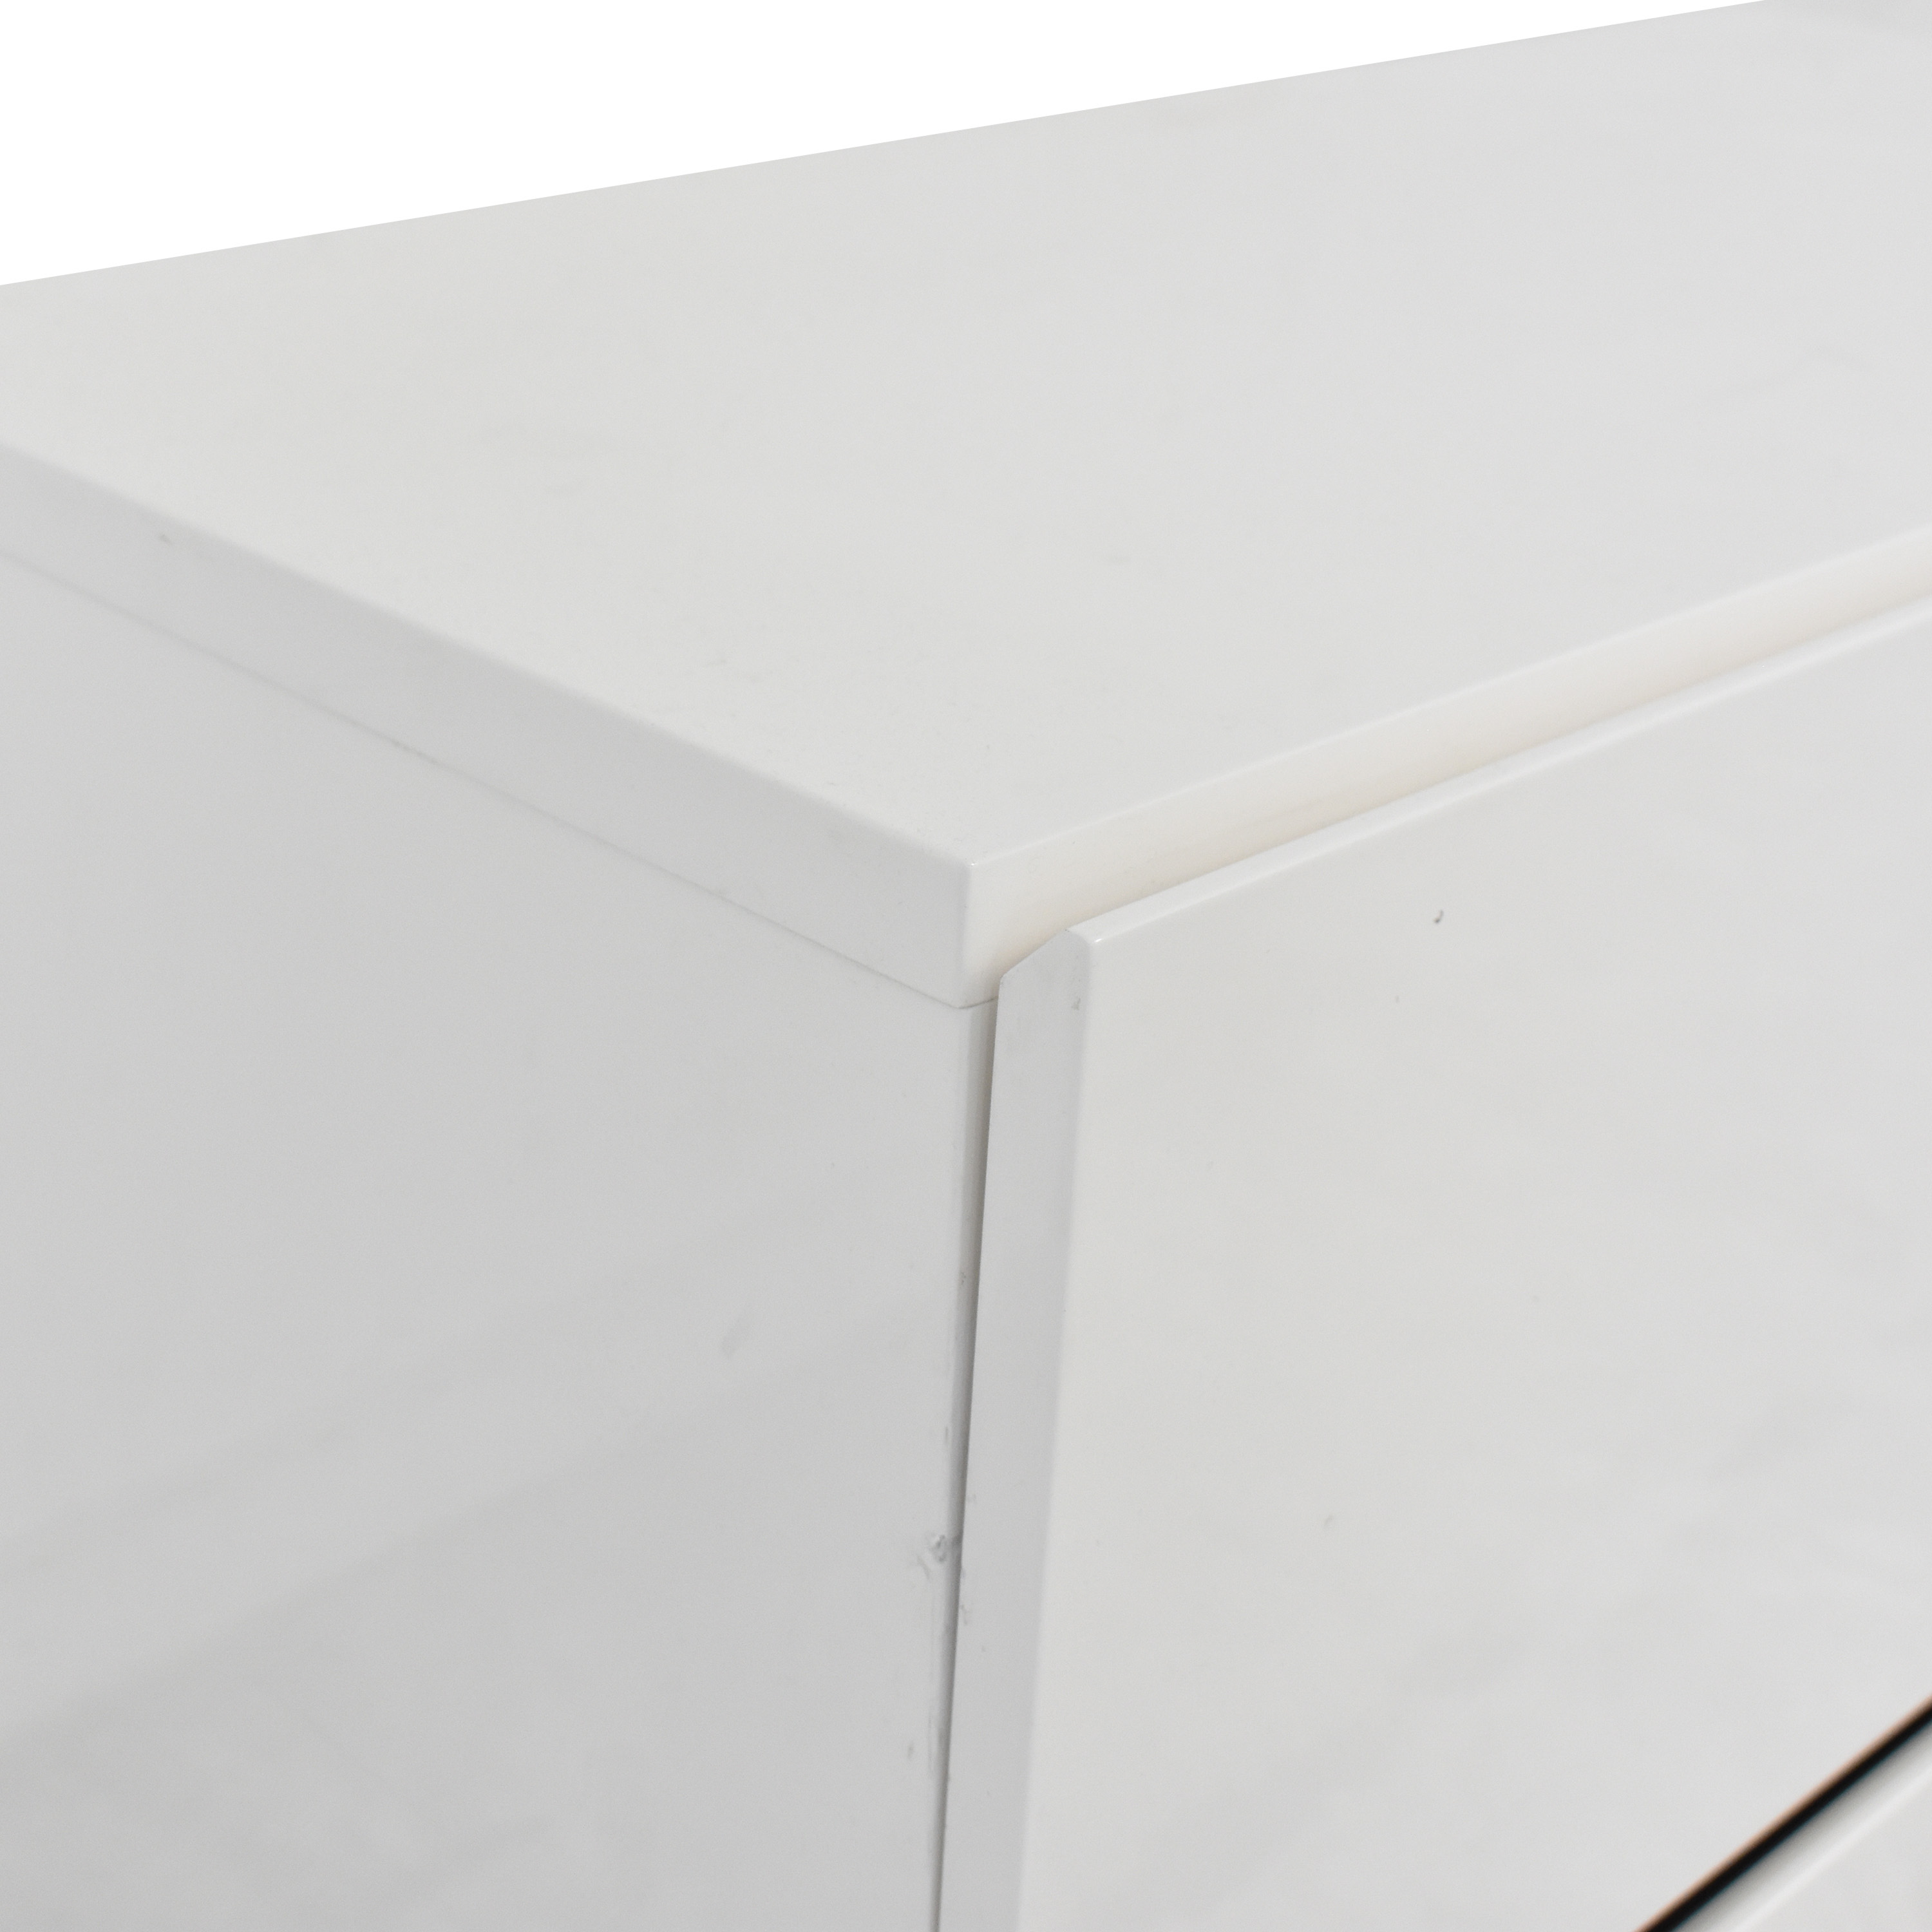 West Elm West Elm Lacquer Storage Modular Lateral File Cabinet price